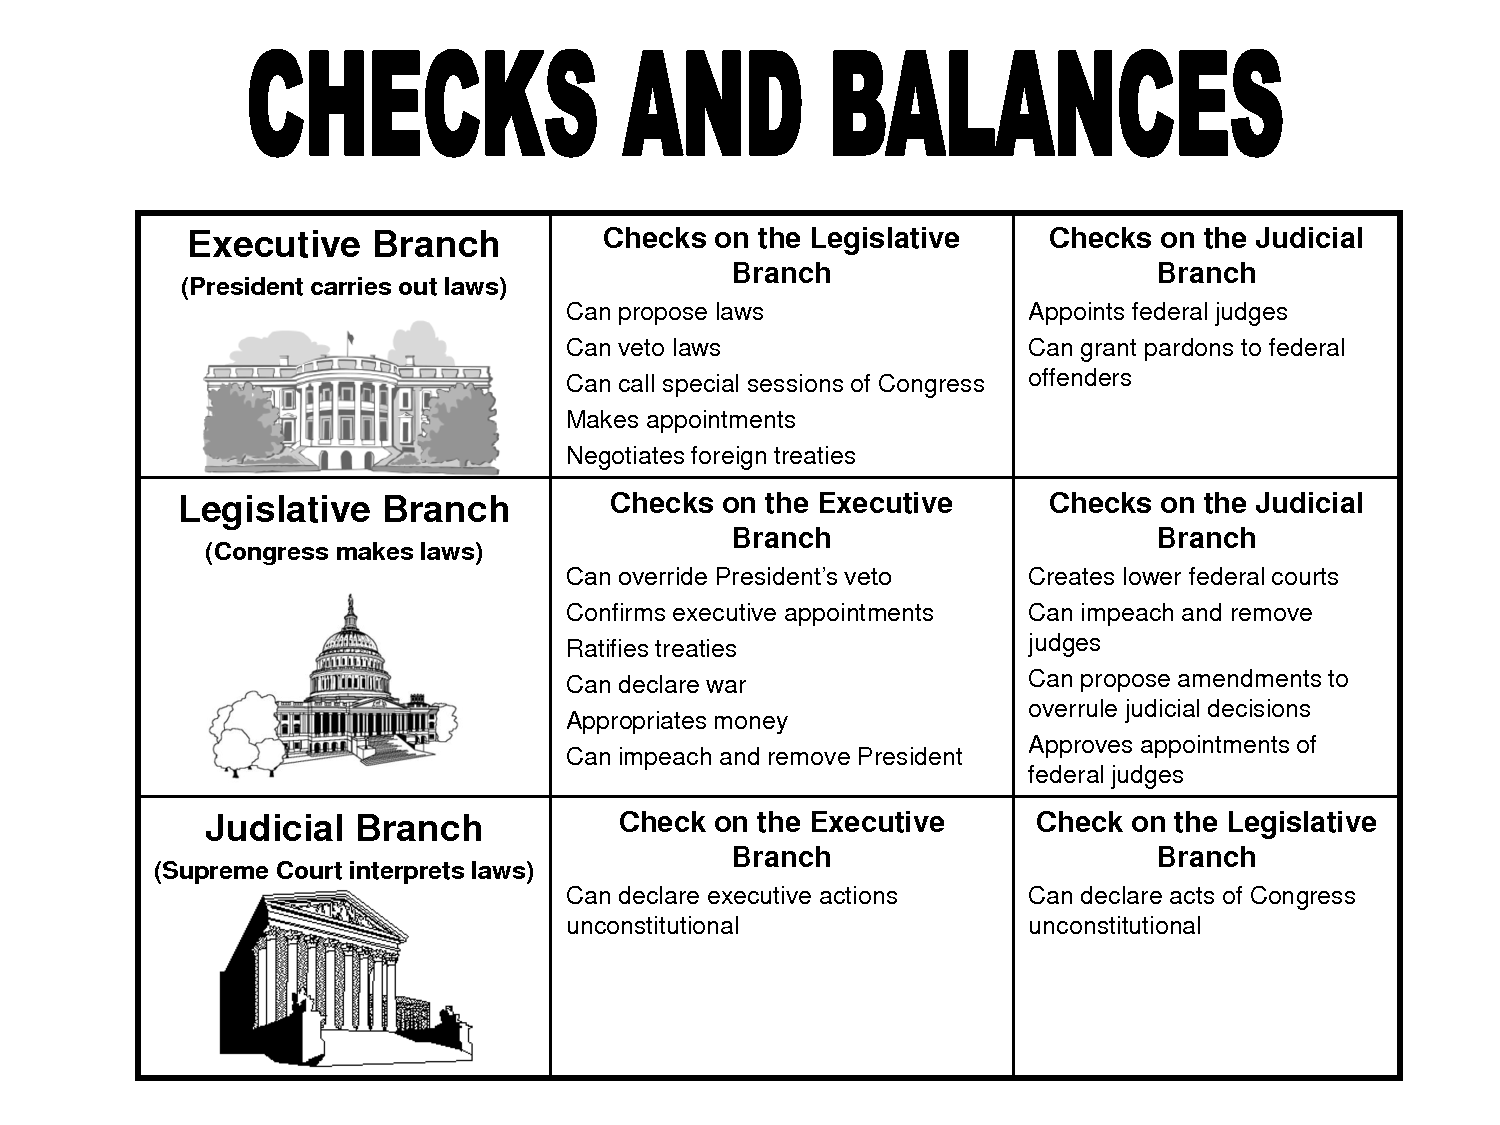 Another Characteristic Of Democracy Involves The Democratic Value Of Checks And Balances